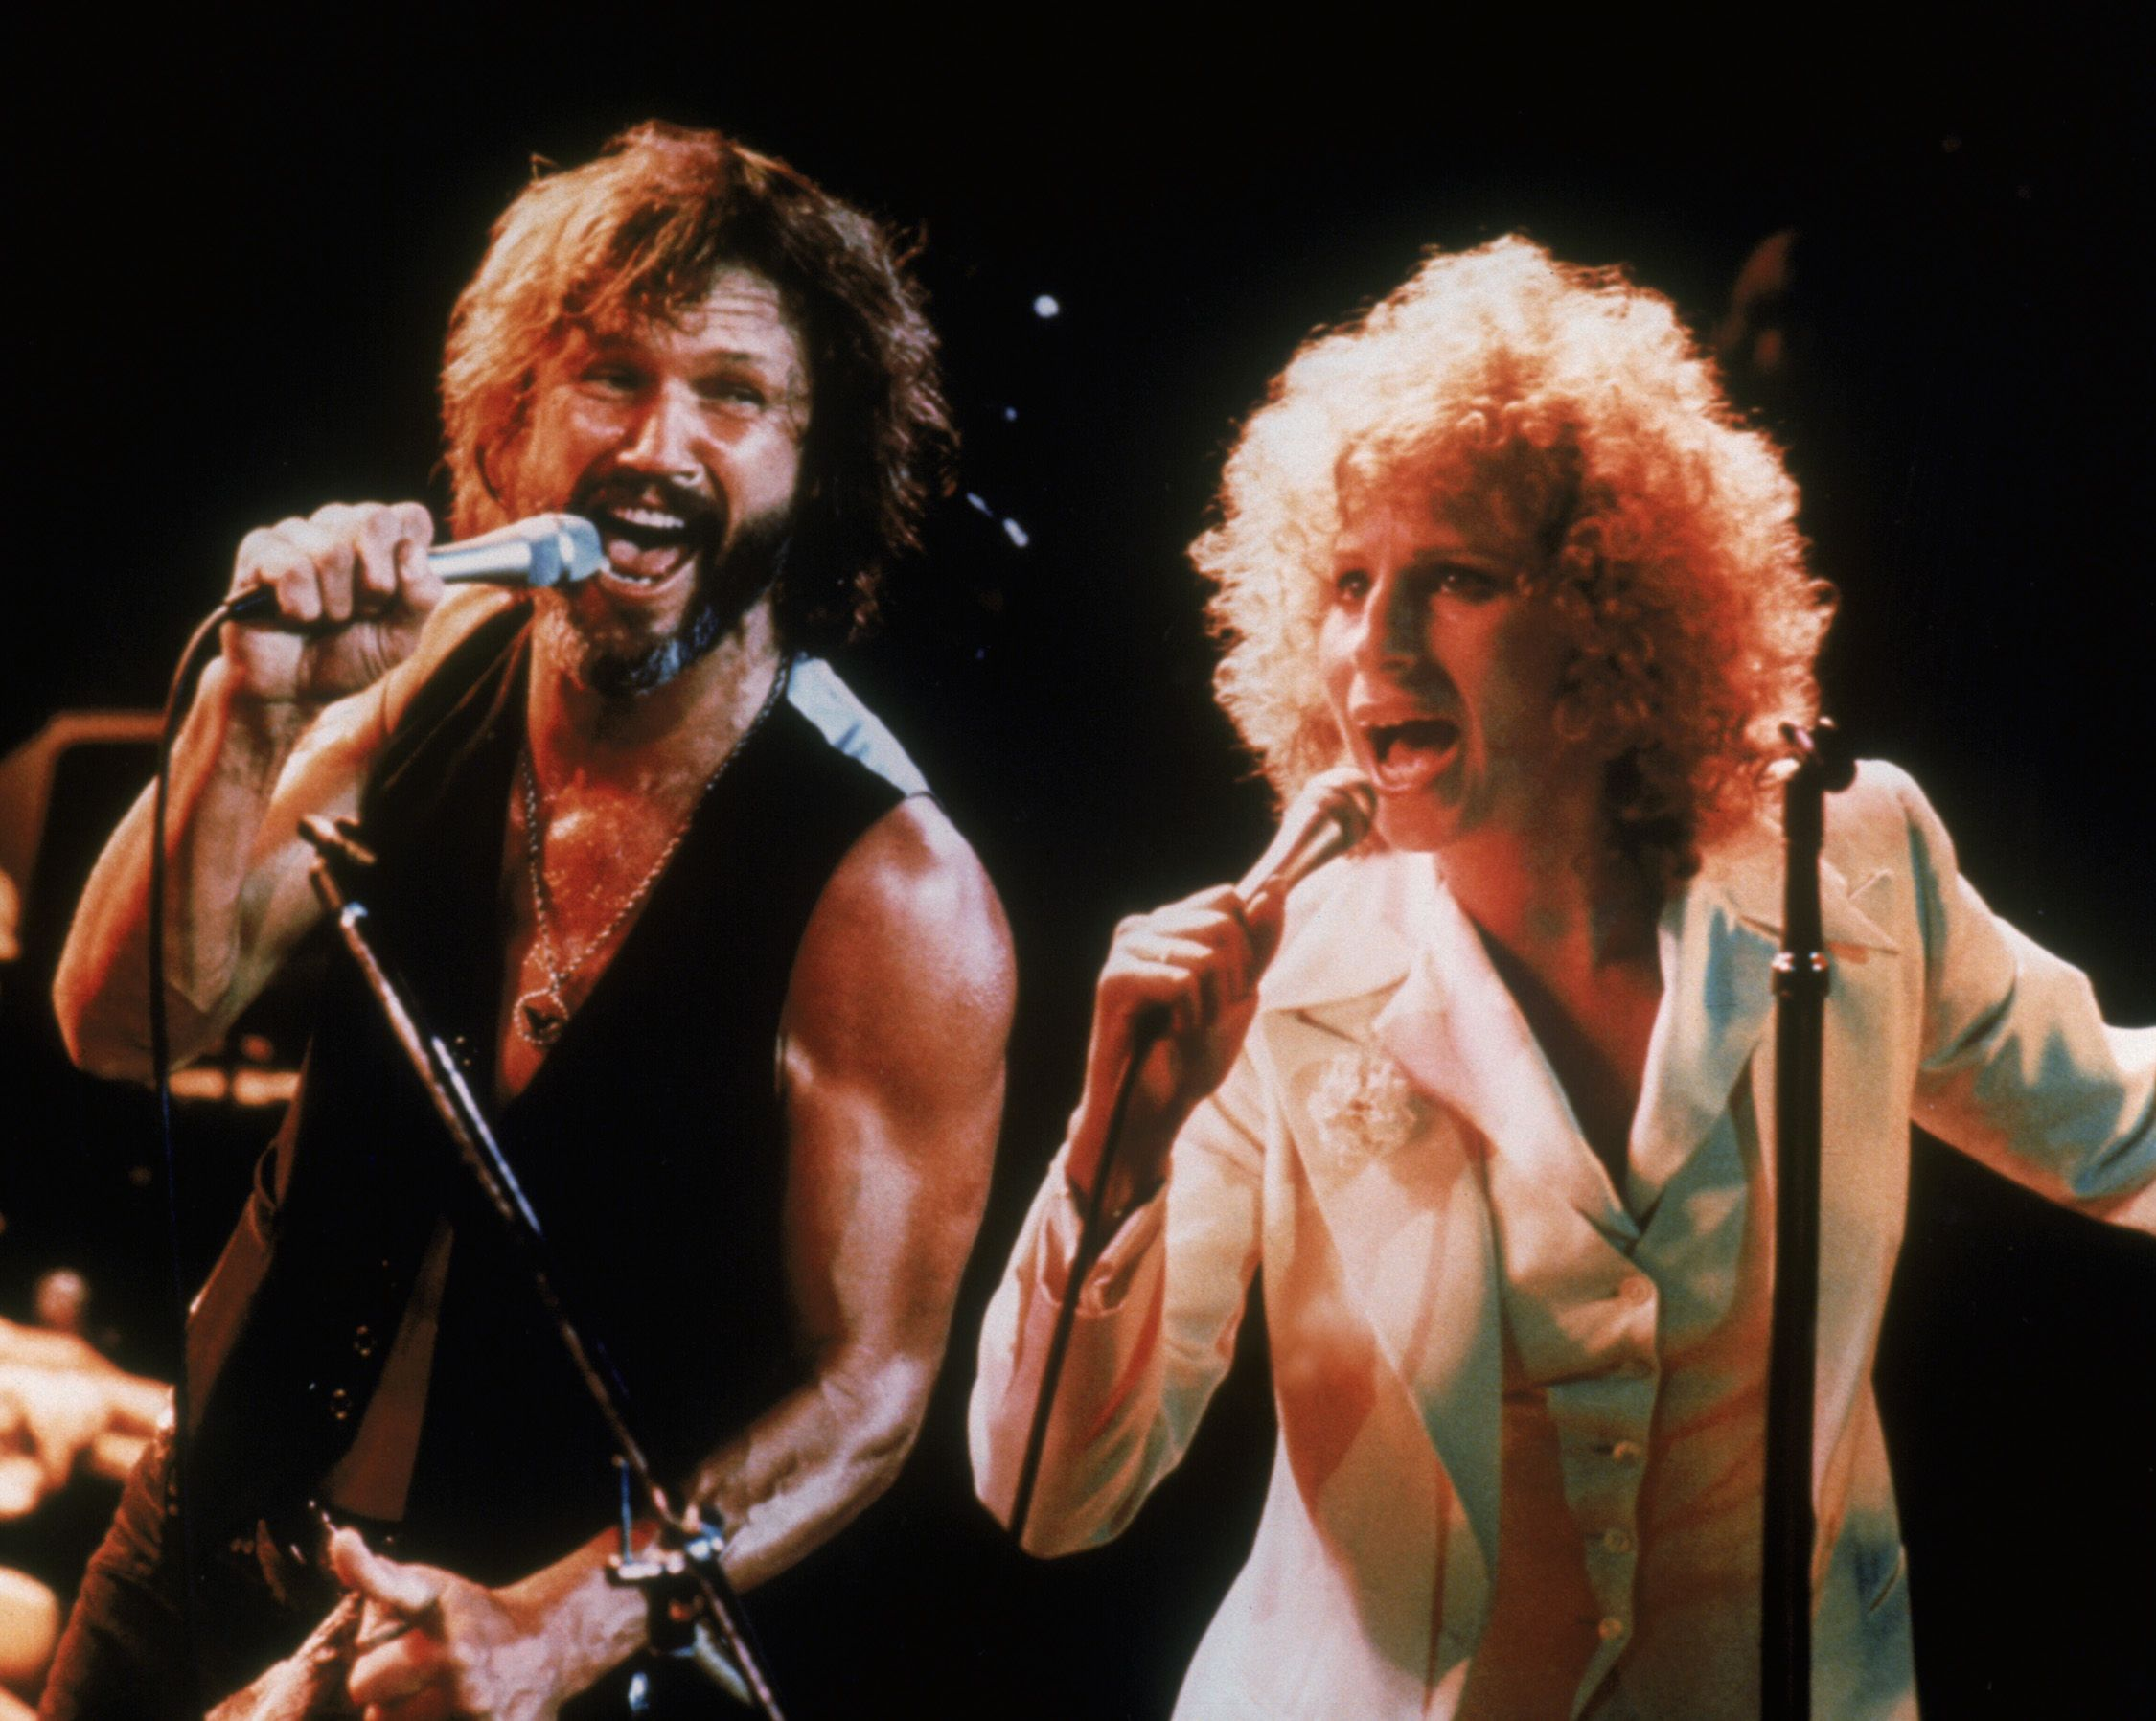 Pin By The Lost Me3rmaid On Retro 70 S 80 S Style A Star Is Born Barbra Streisand Kris Kristofferson